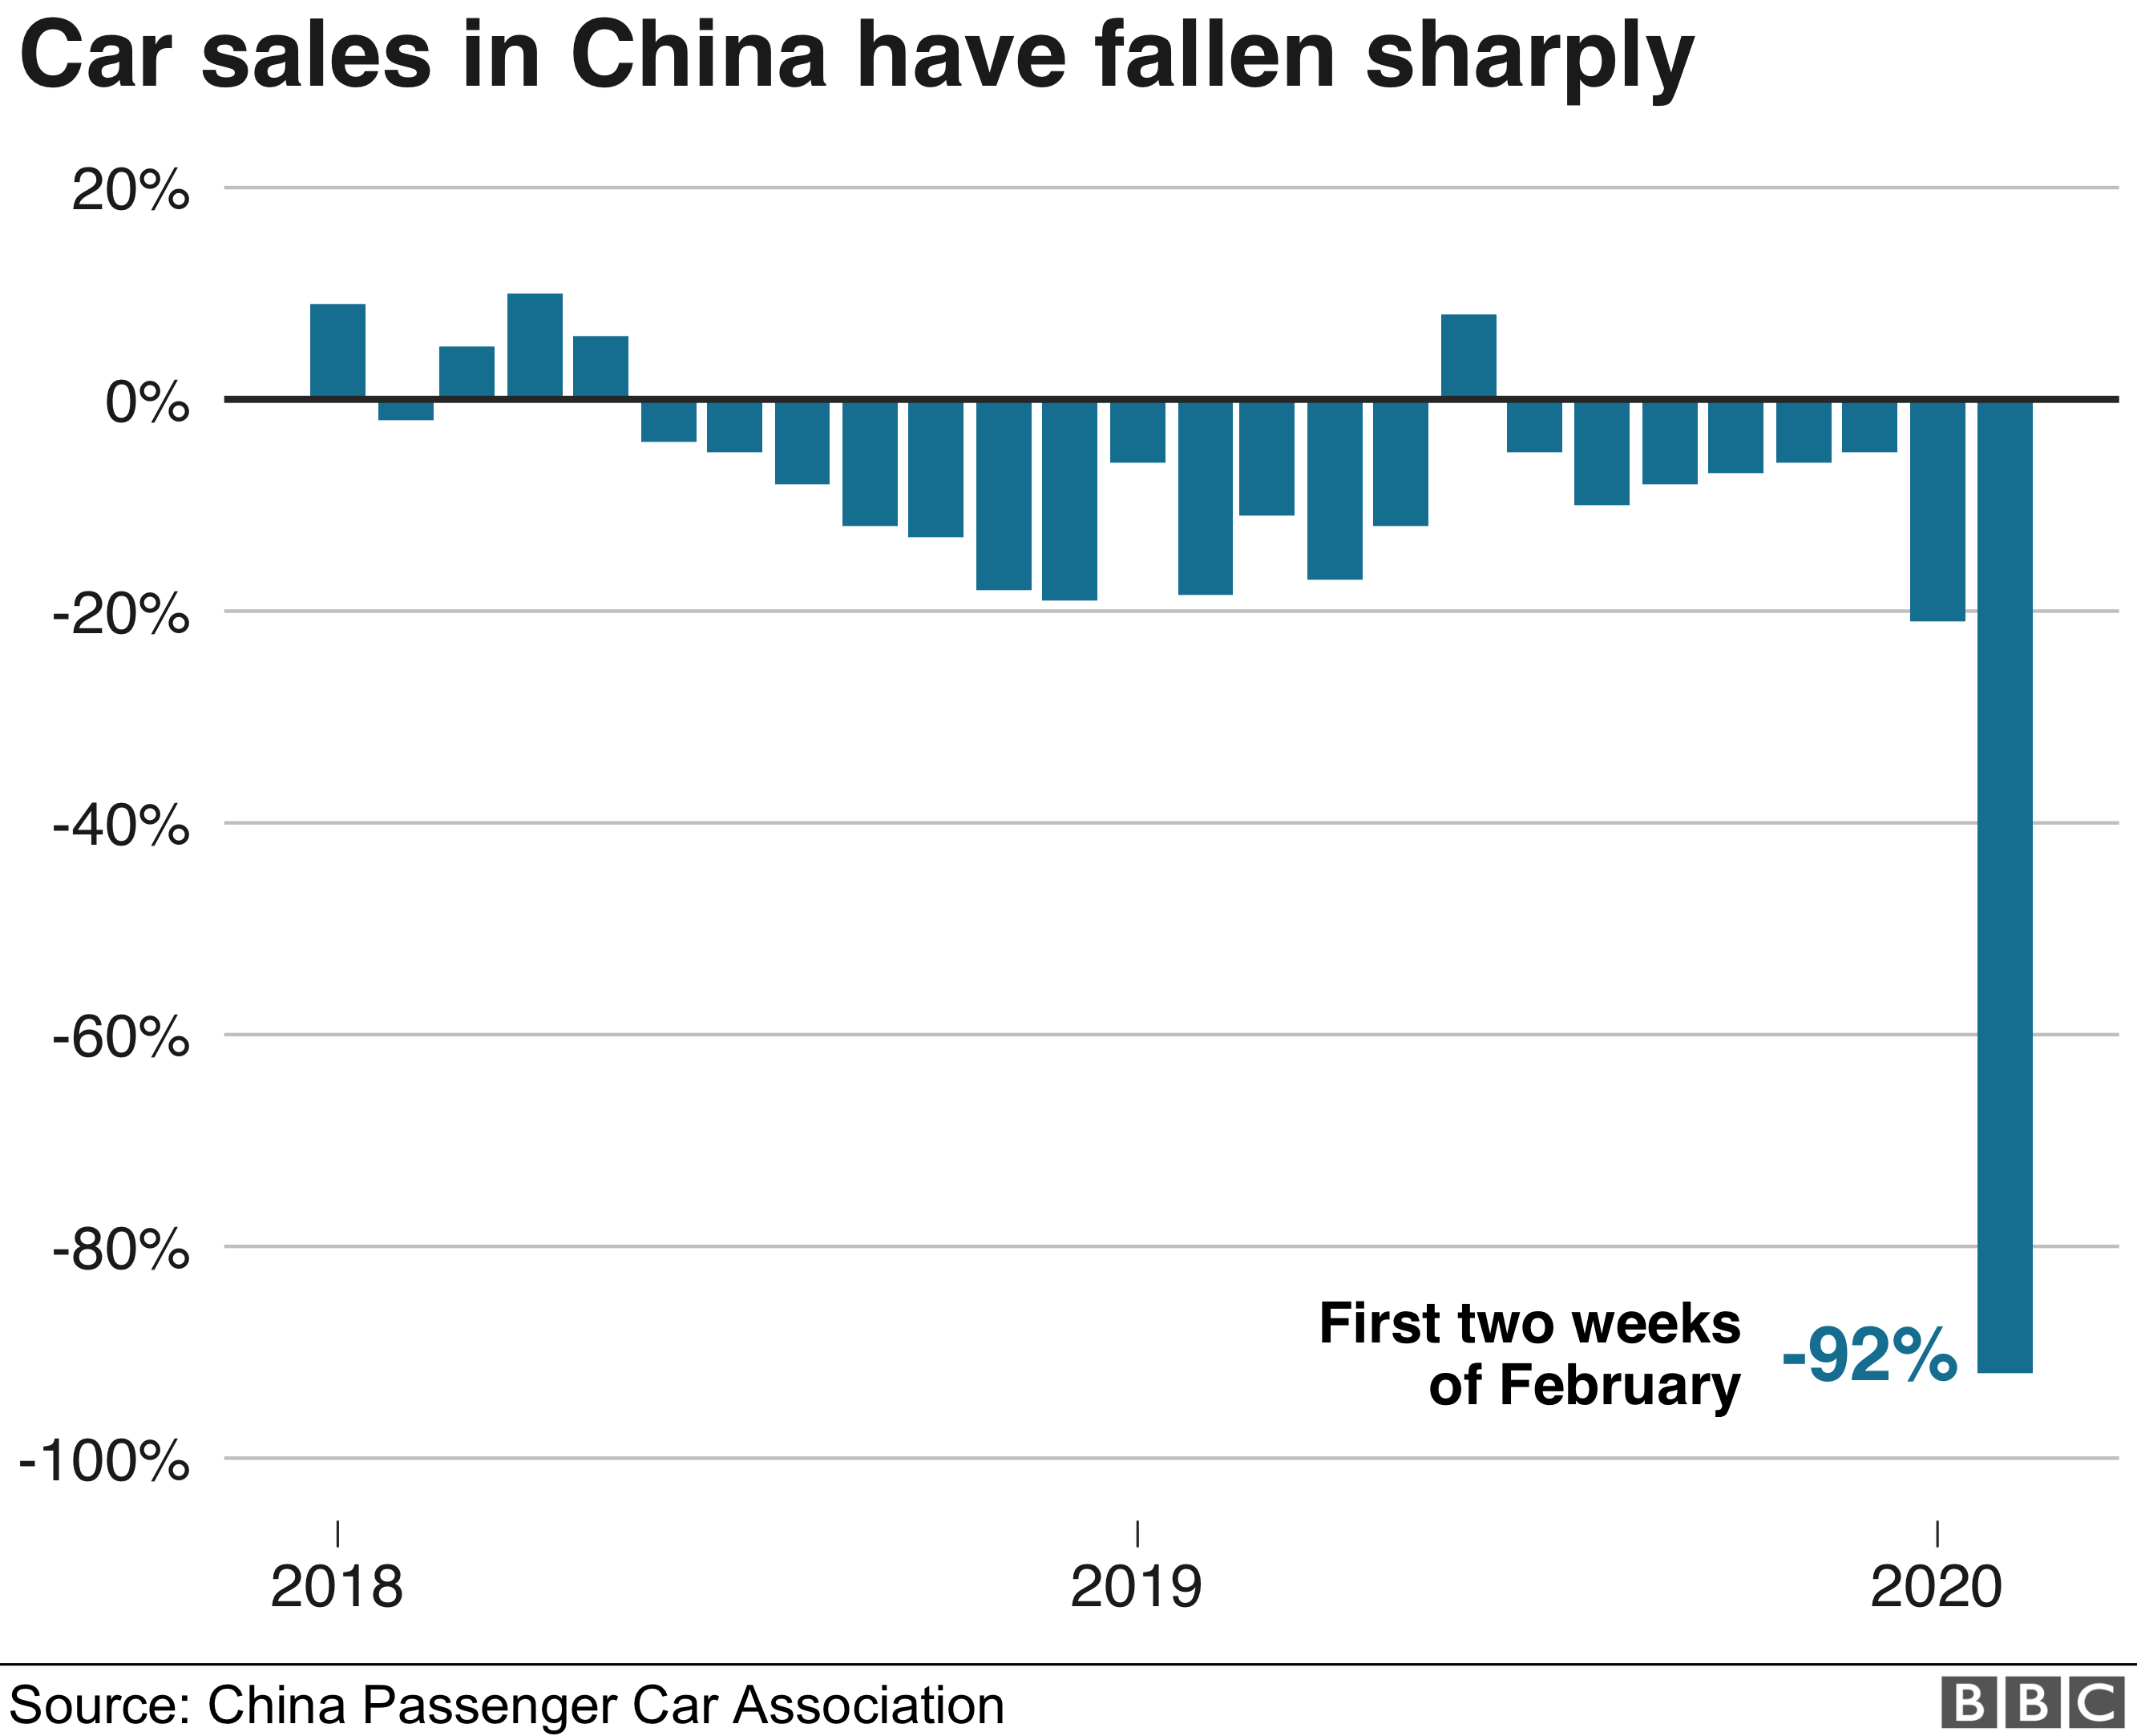 Chart showing China car sales